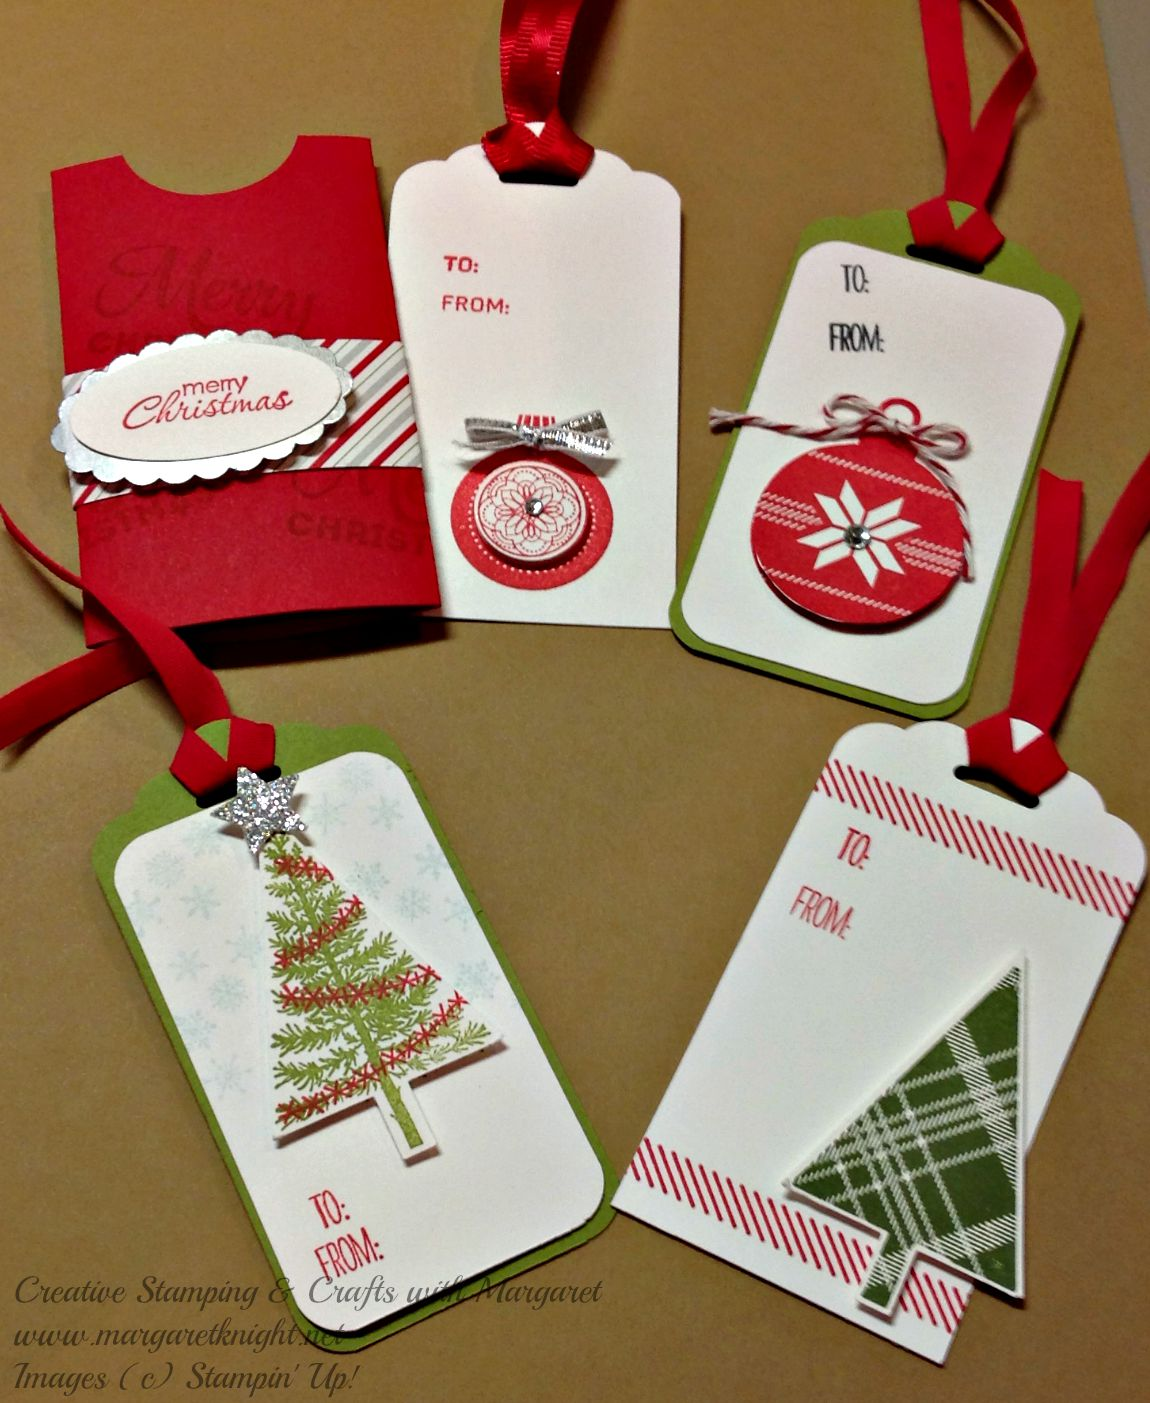 Christmas In July Gift Tags.More Christmas In July Gift Tags Creative Stamping